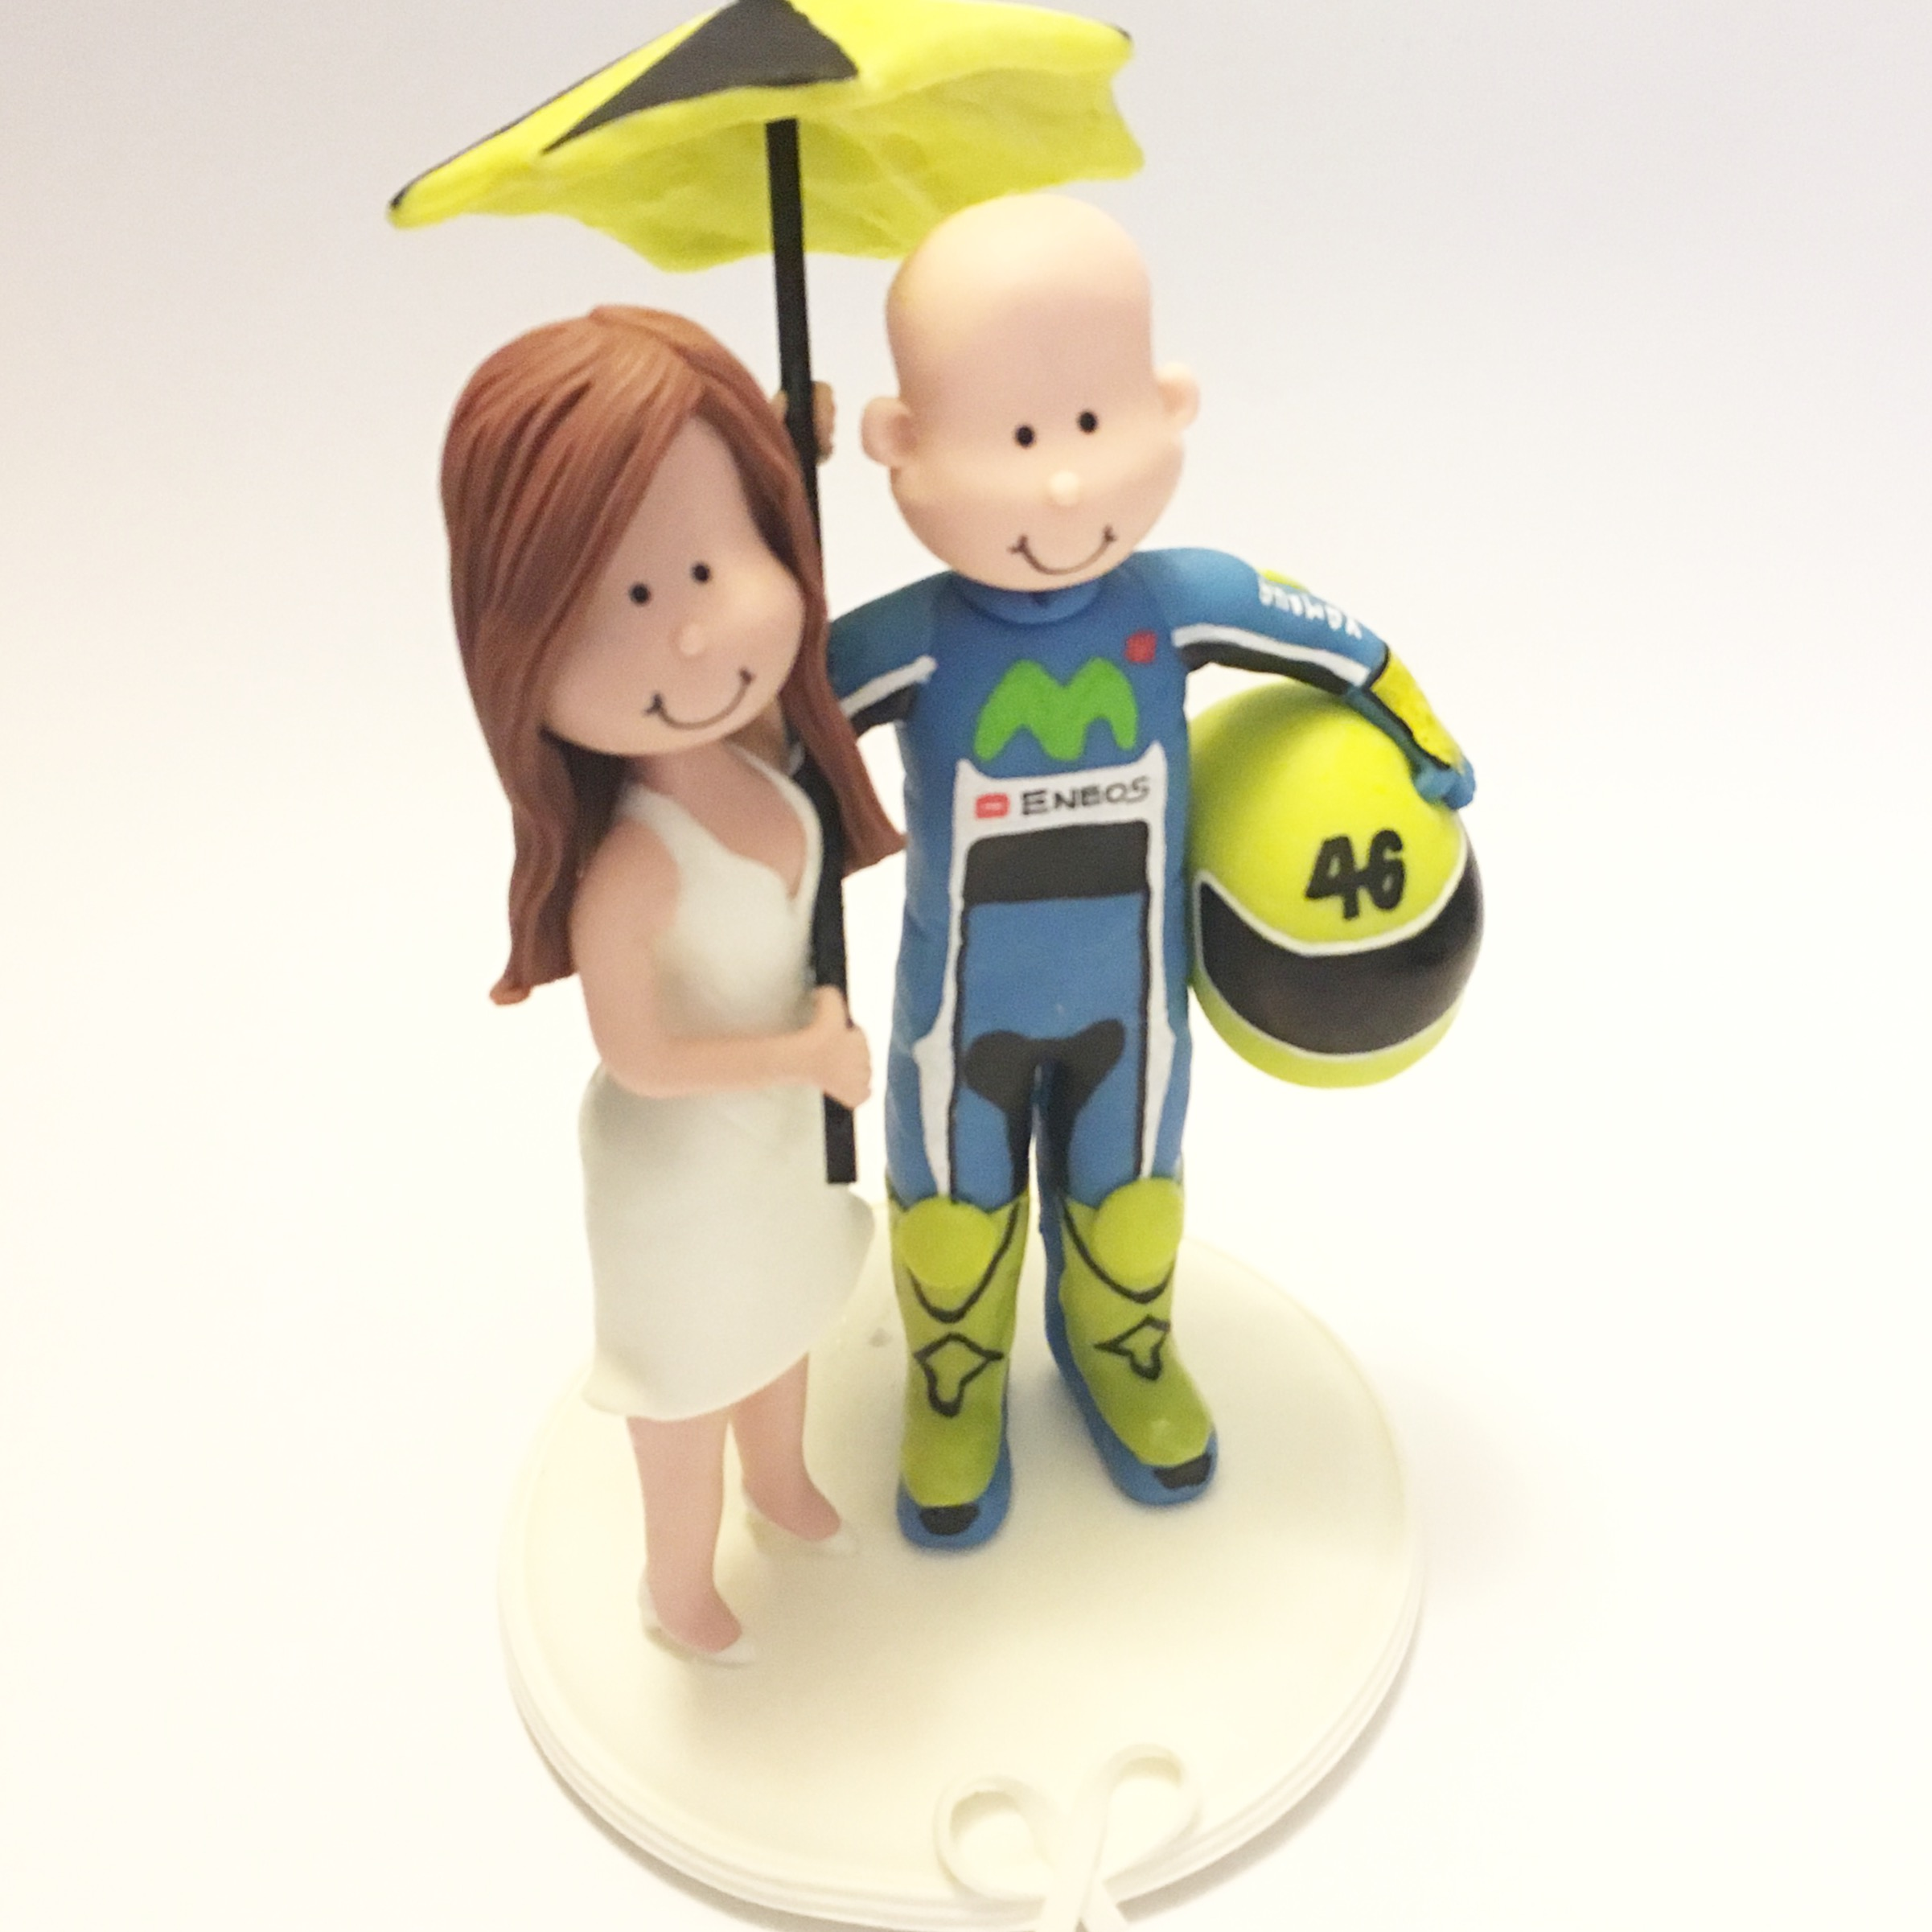 wedding-cake-topper-pilot